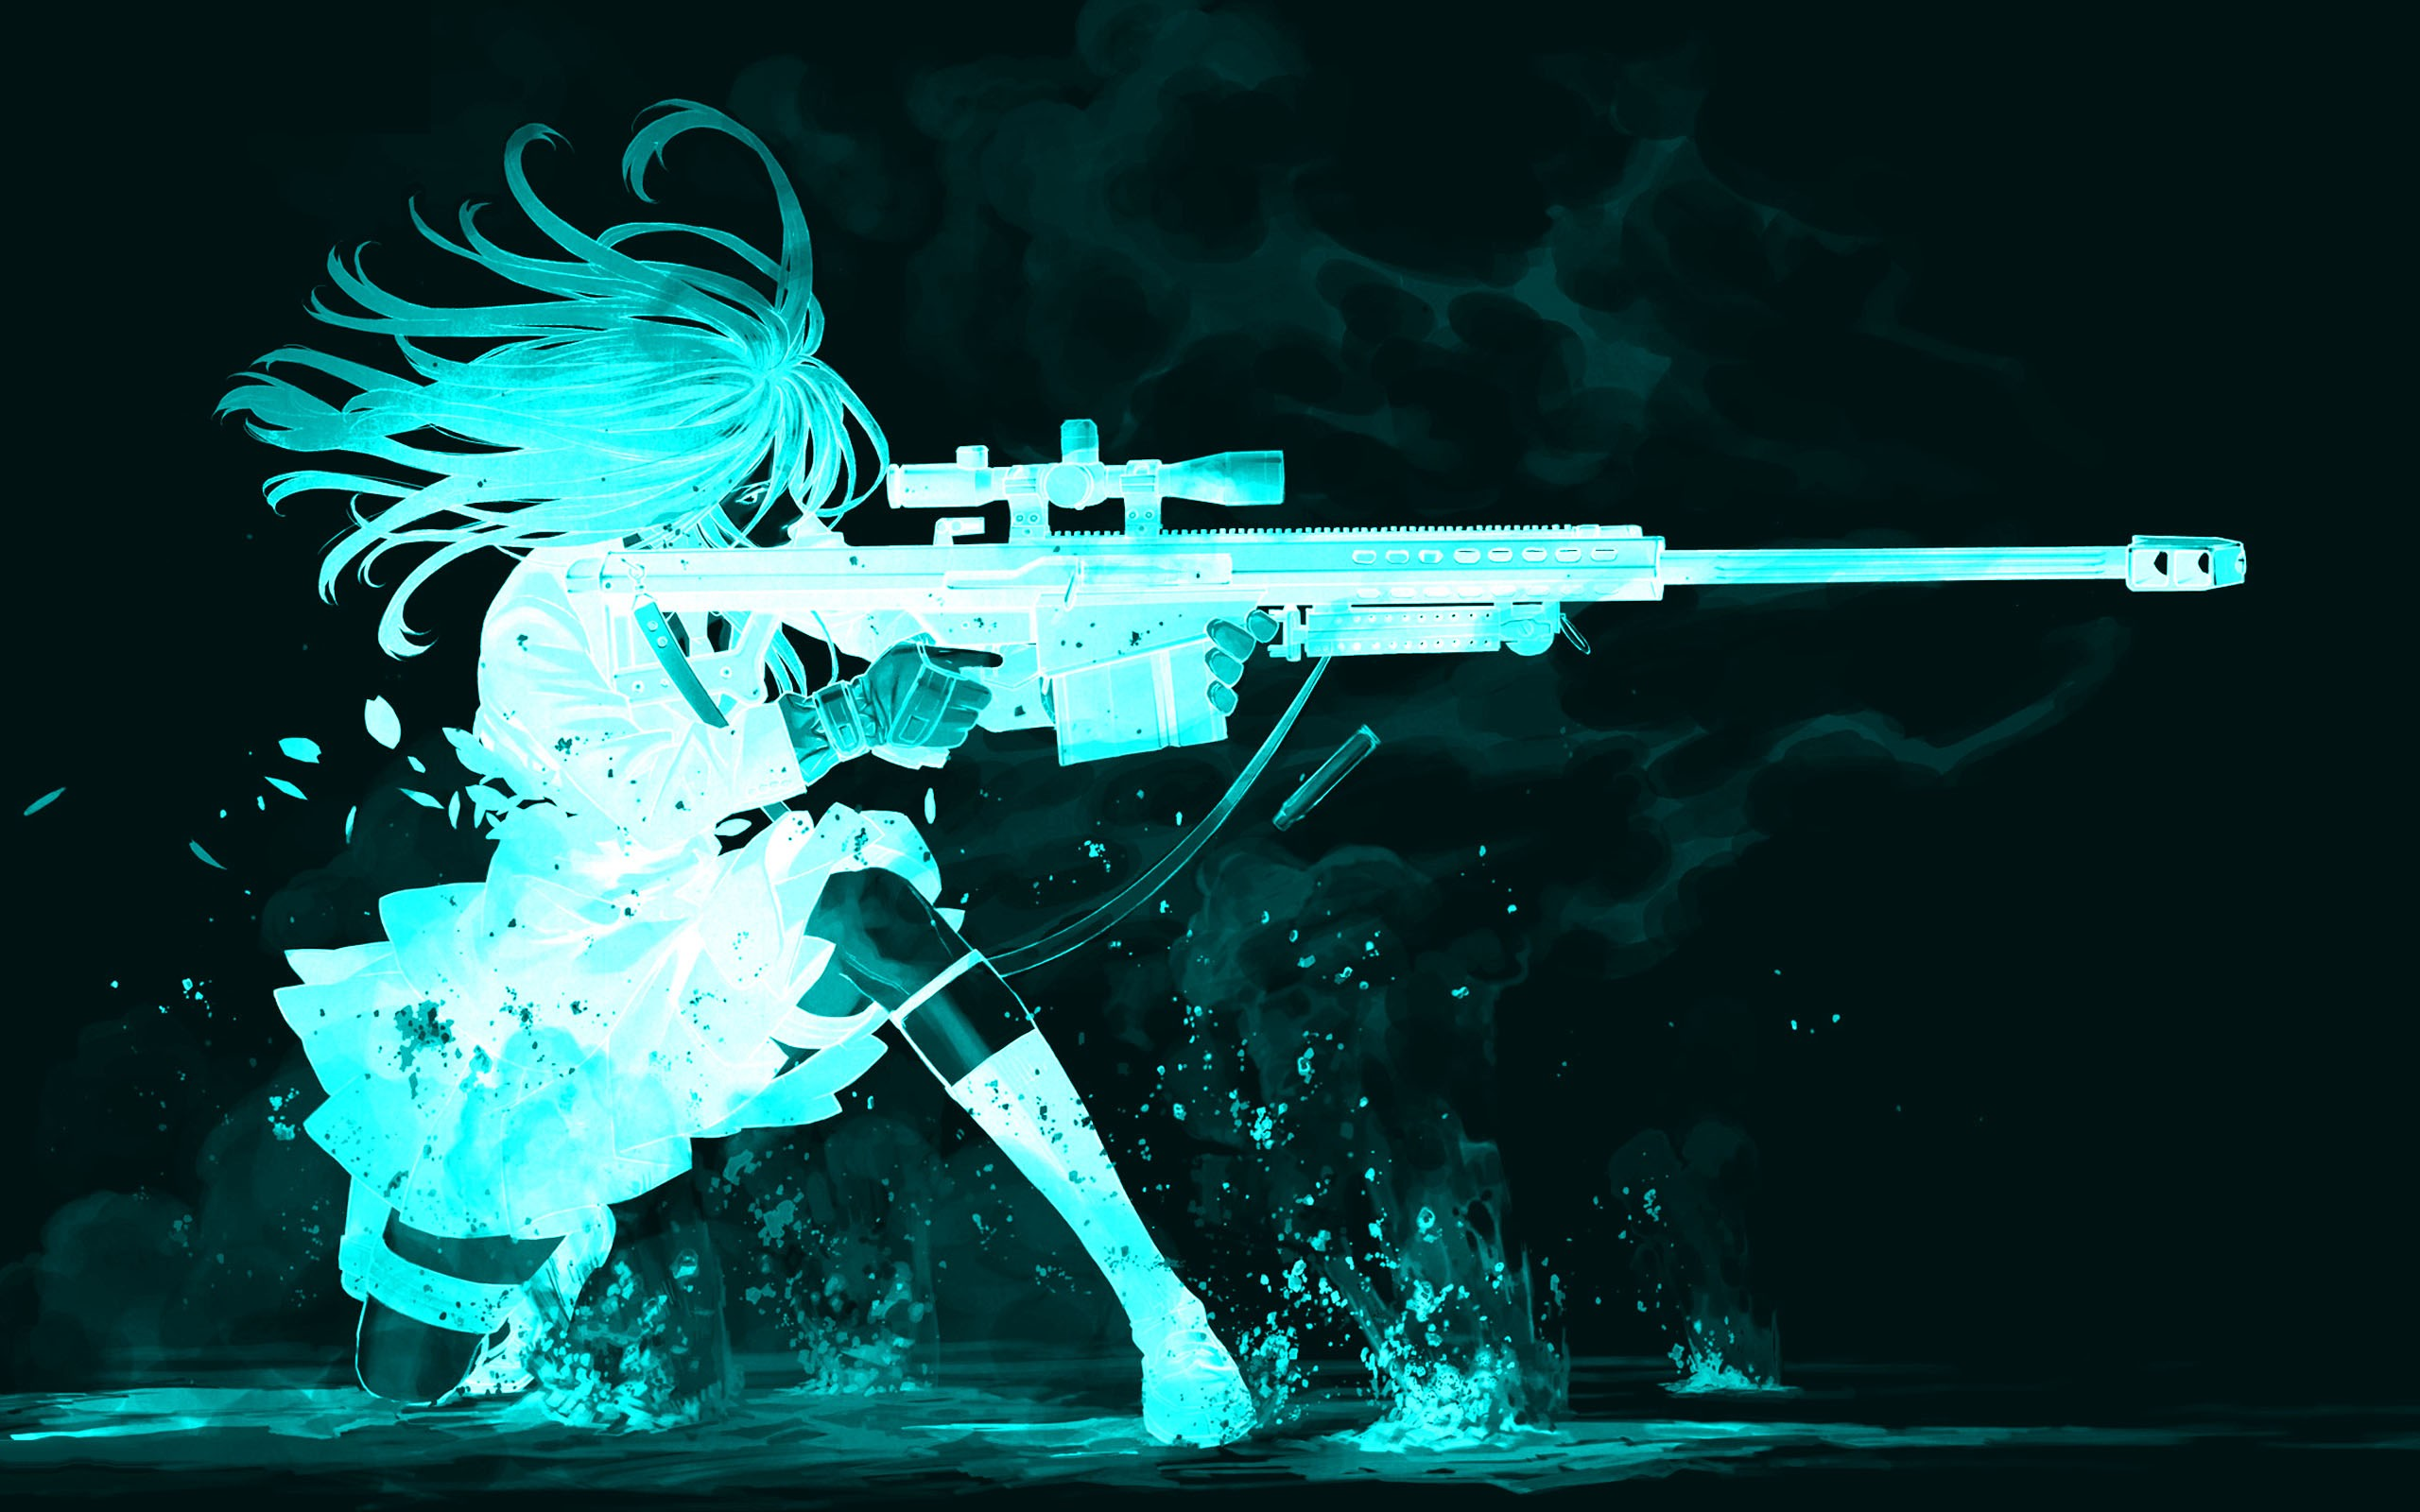 60+ Cool Anime backgrounds ·① Download free cool full HD wallpapers for desktop, mobile, laptop